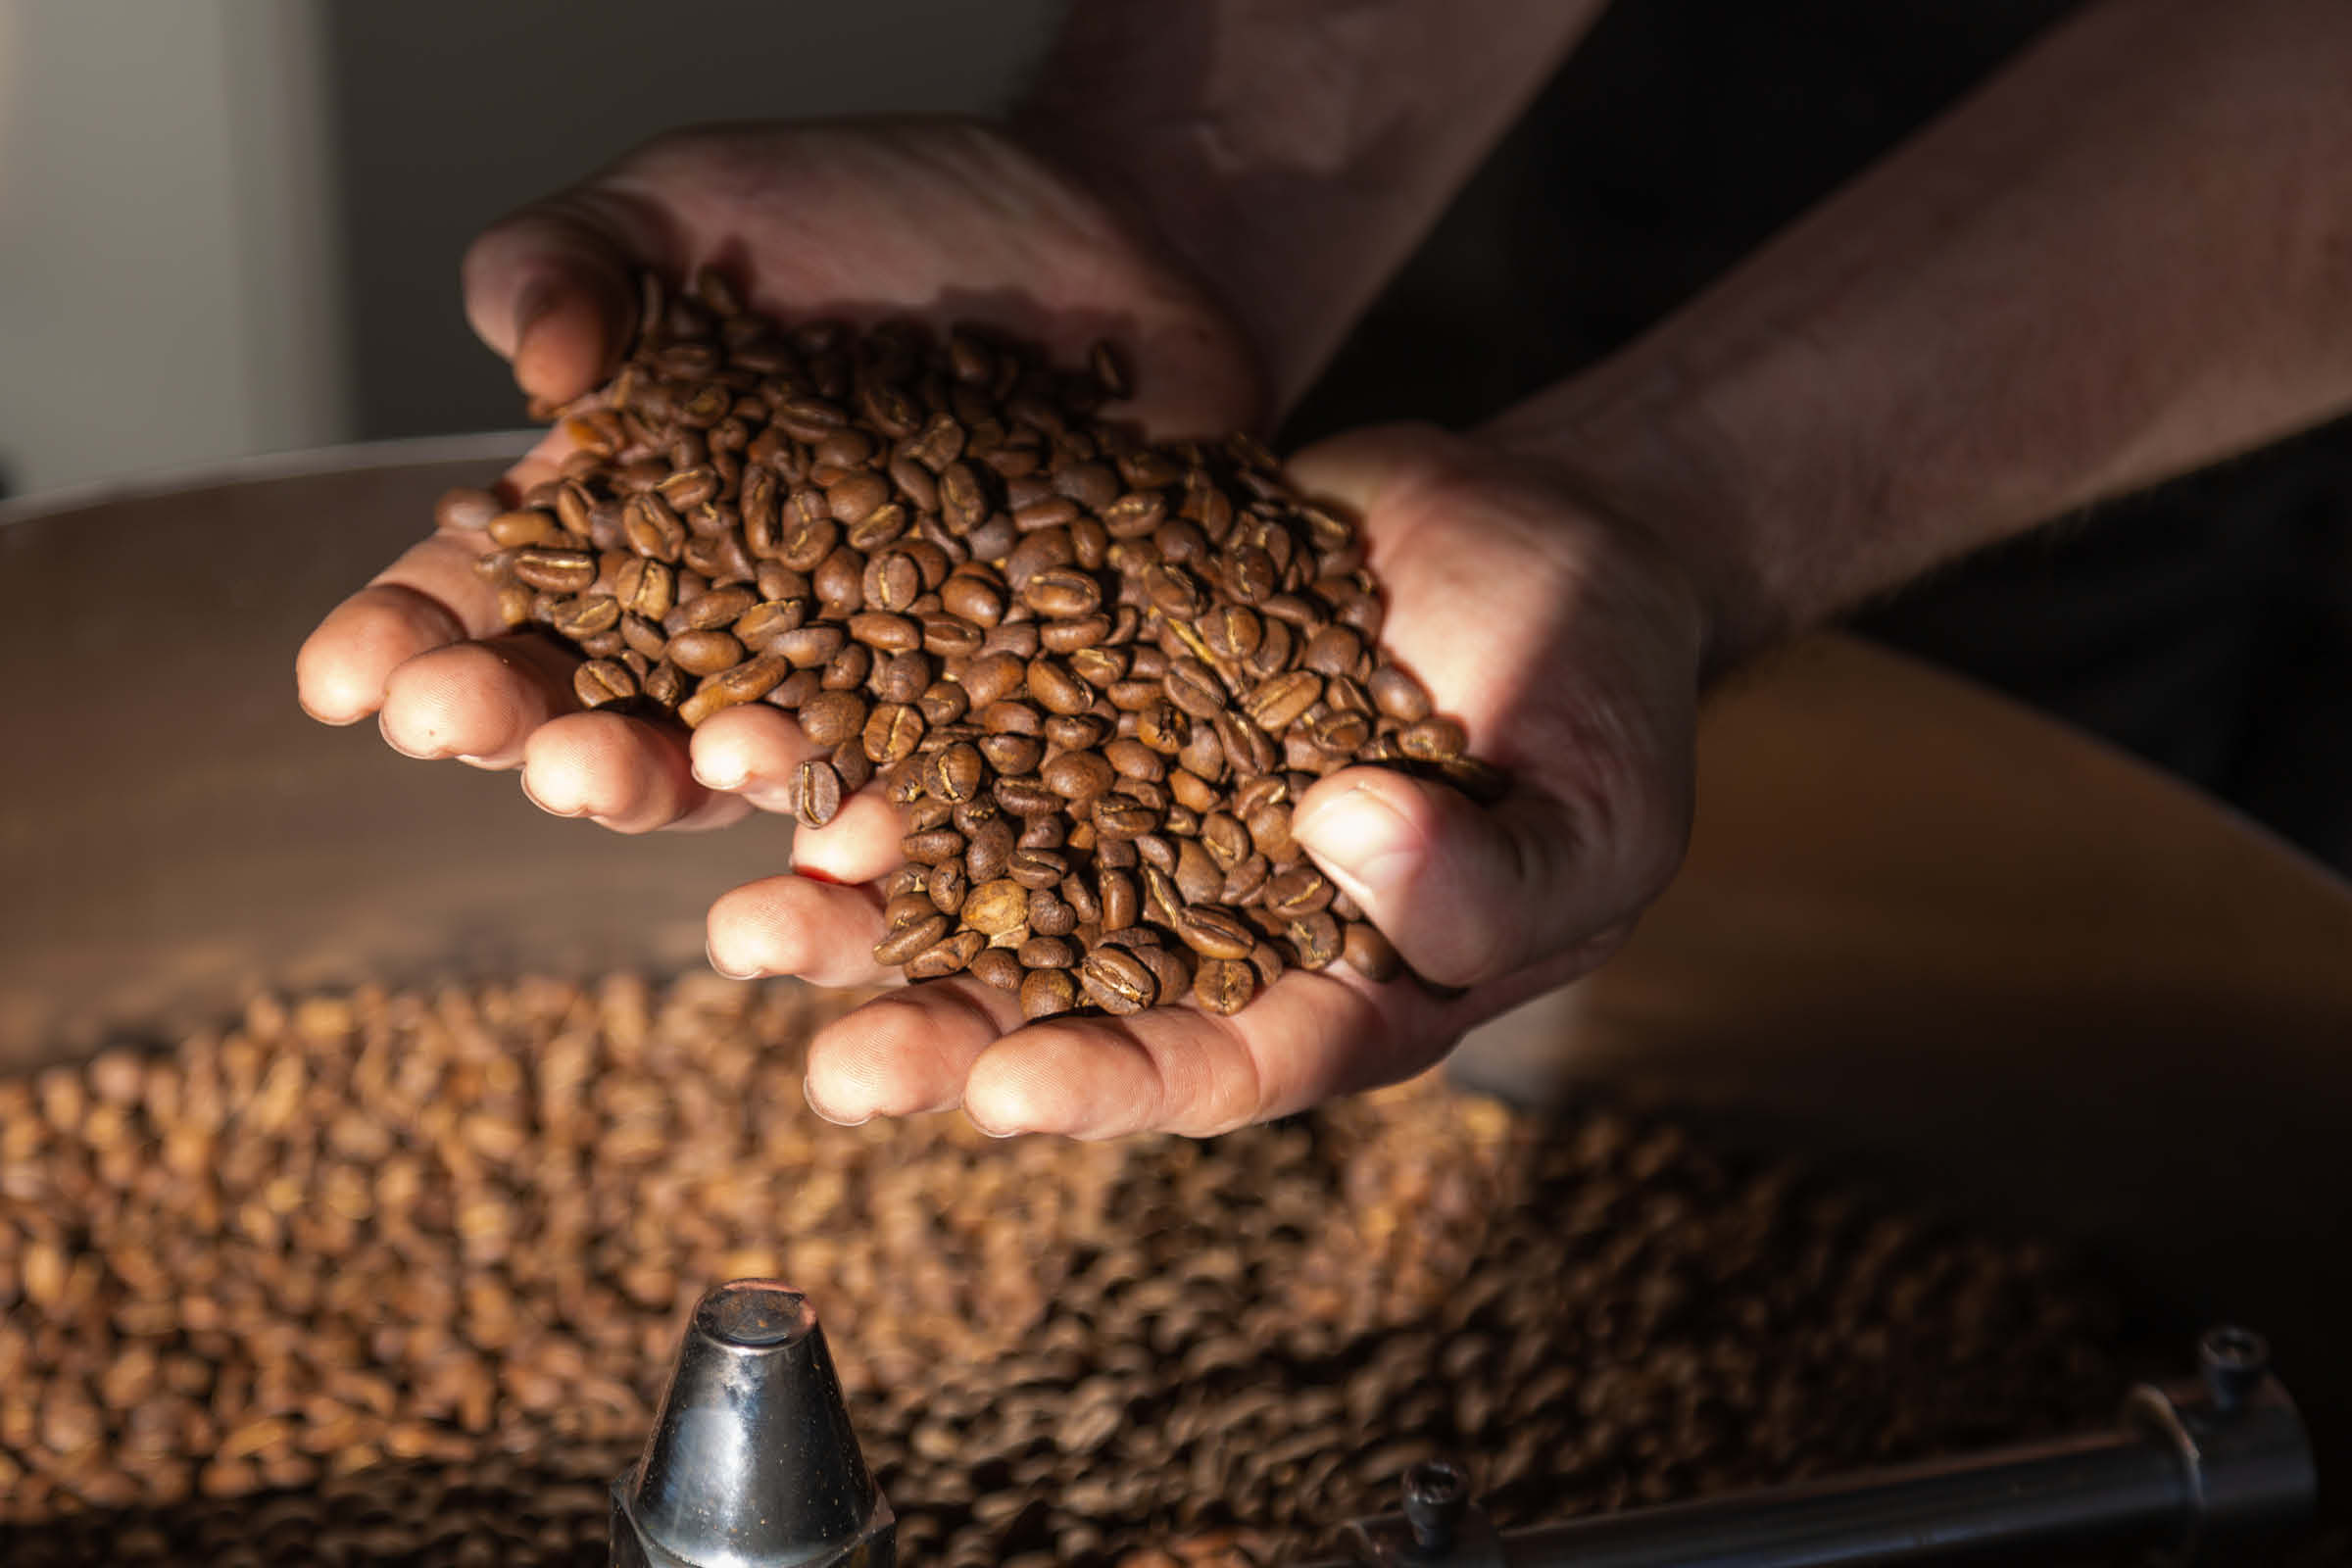 supporting the brand with a photo of hands holding the freshly roasted coffee before it is packaged